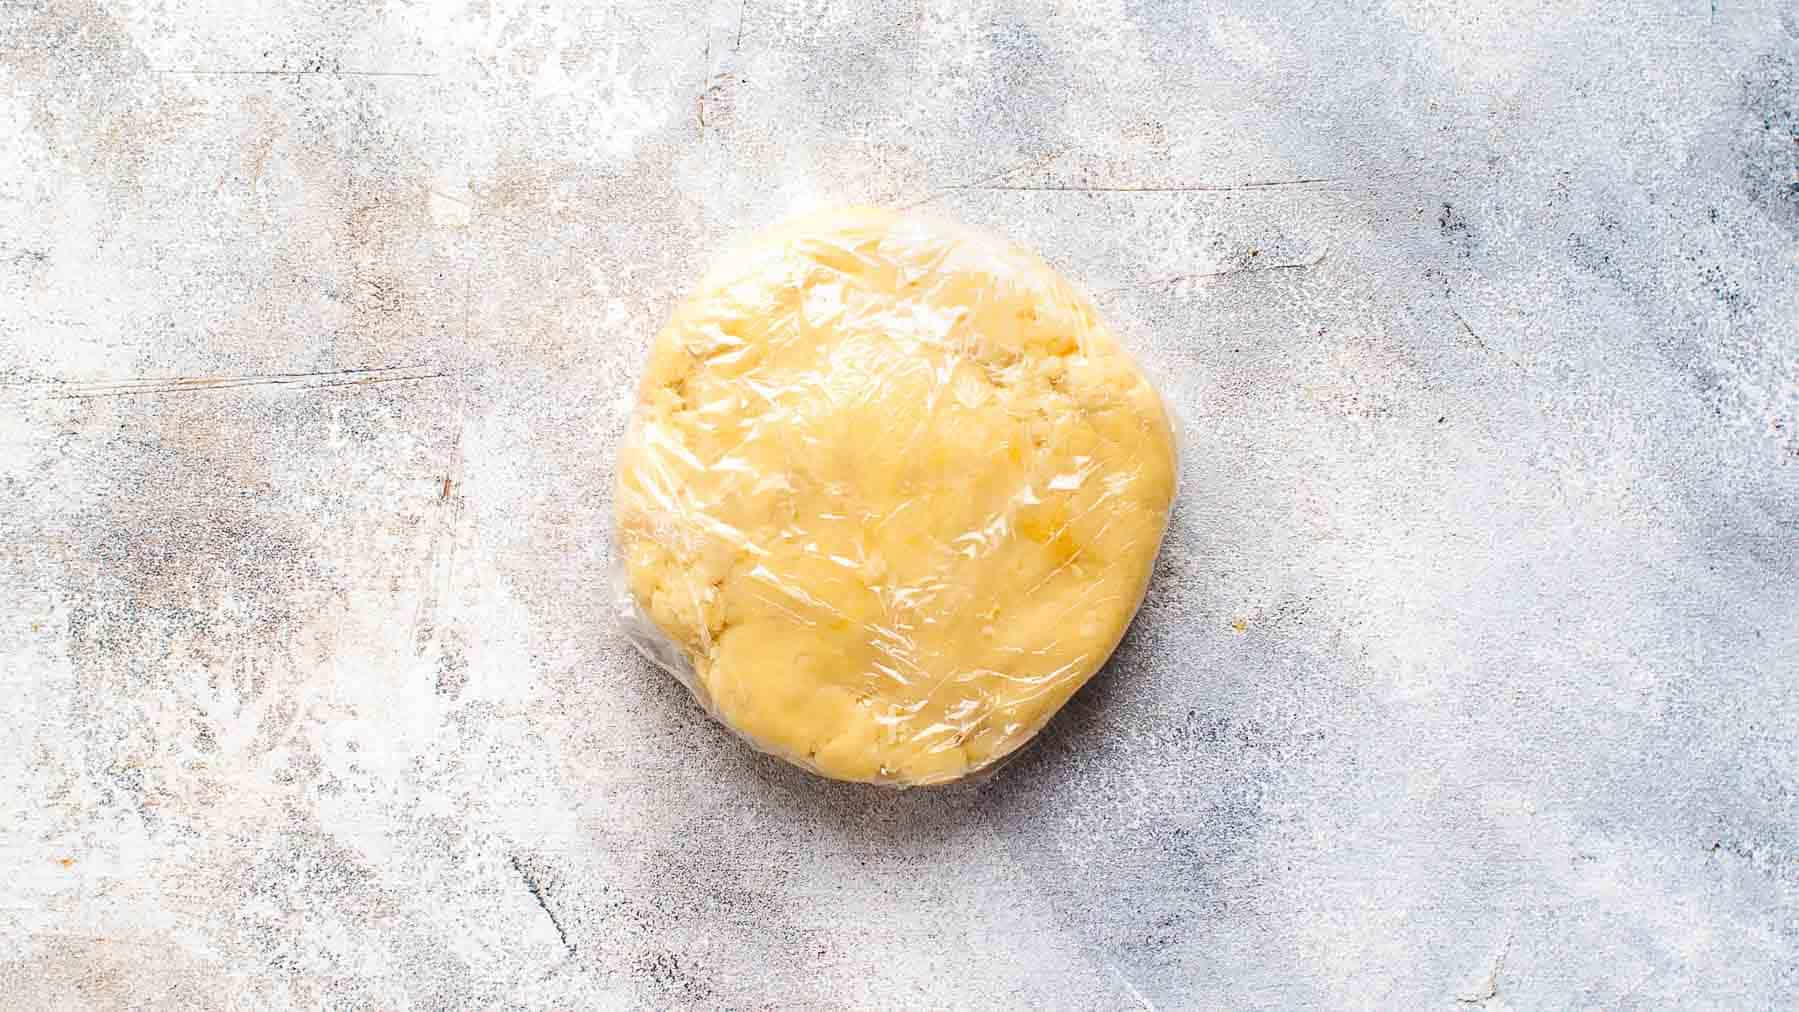 Tart crust dough shaped into a disc and wrapped in plastic